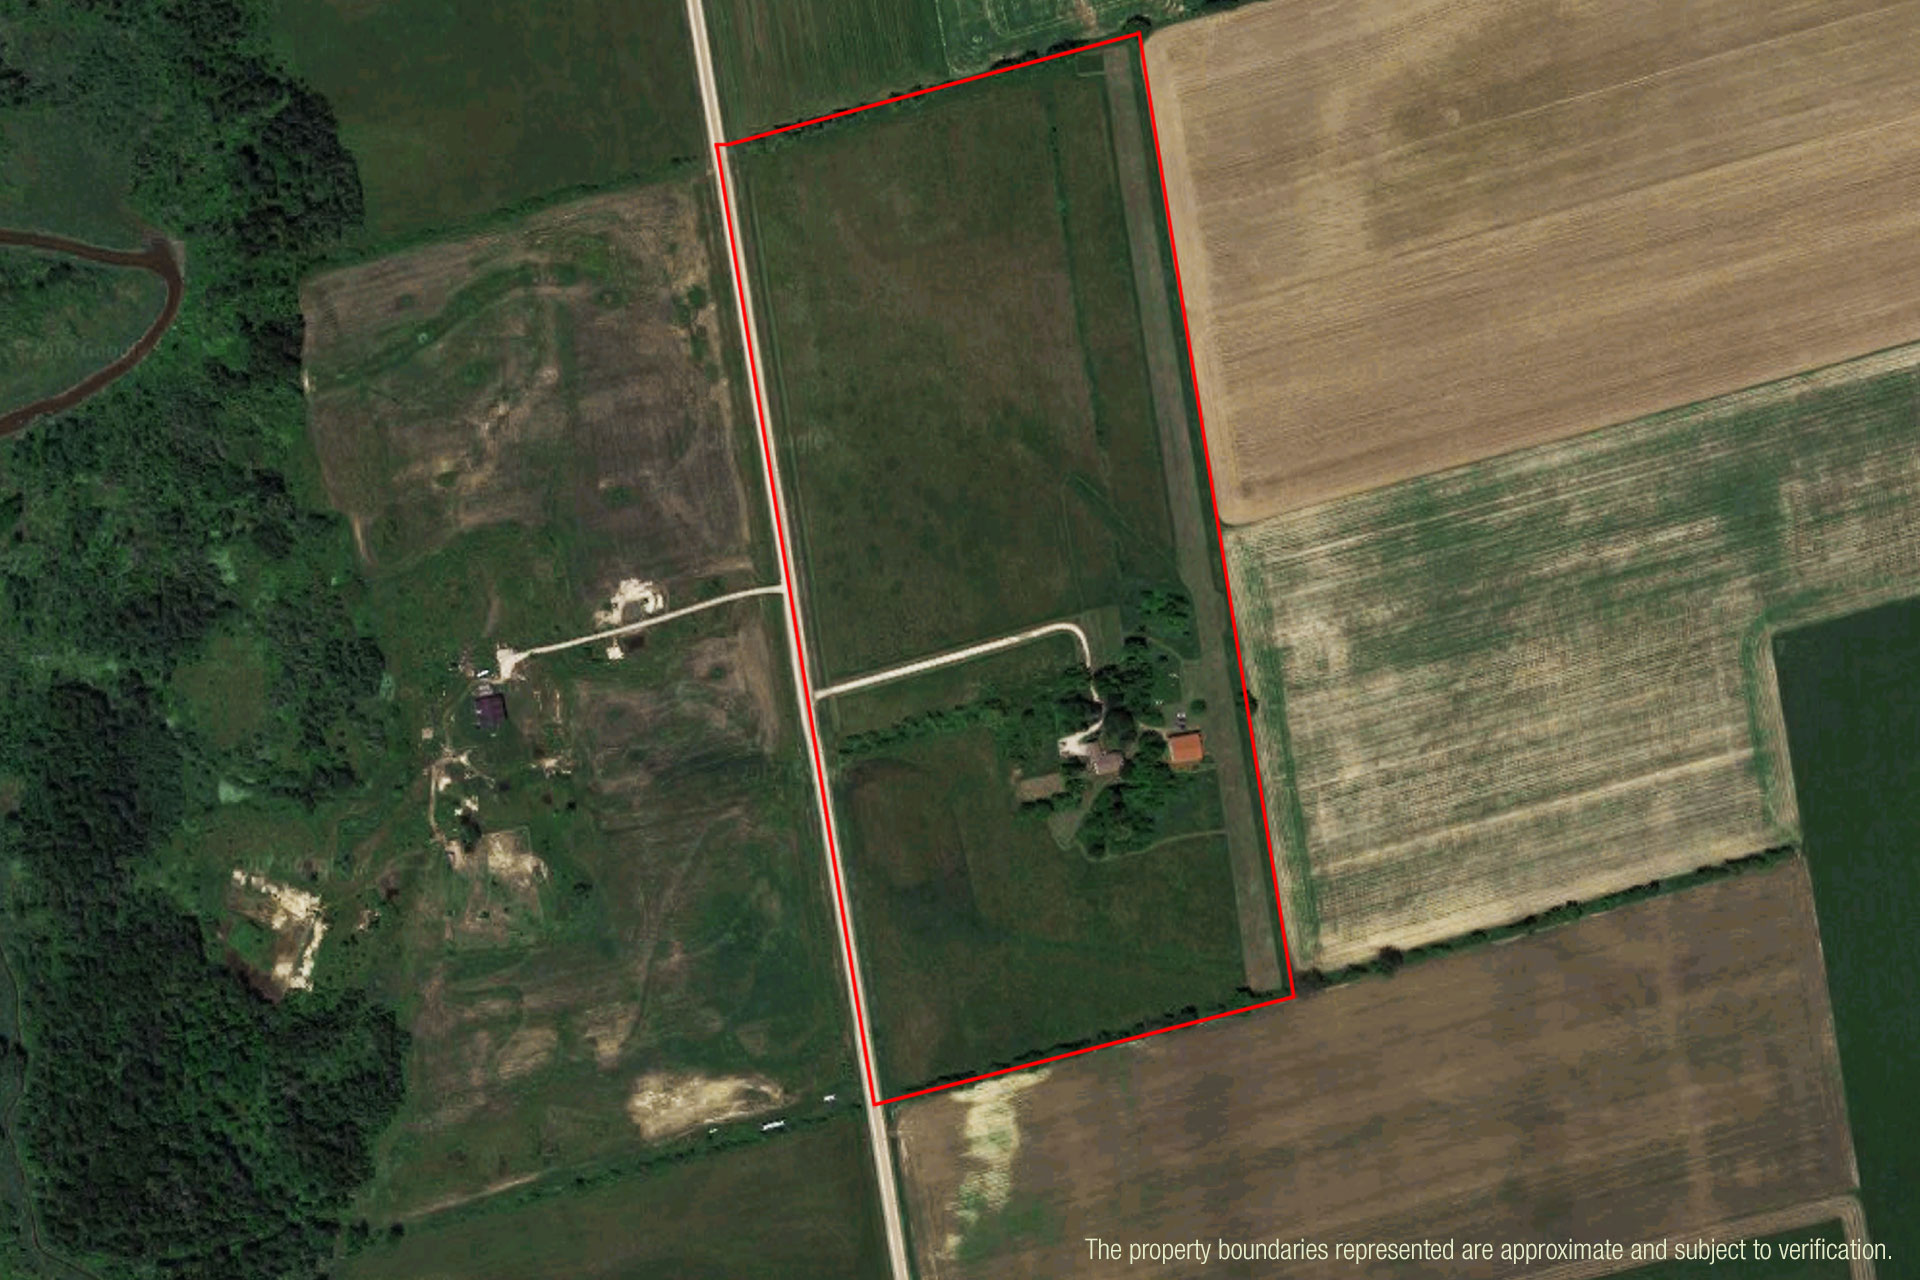 39 Acres in Amaranth, Laurel, For Sale, Mary Klein, Kait Klein